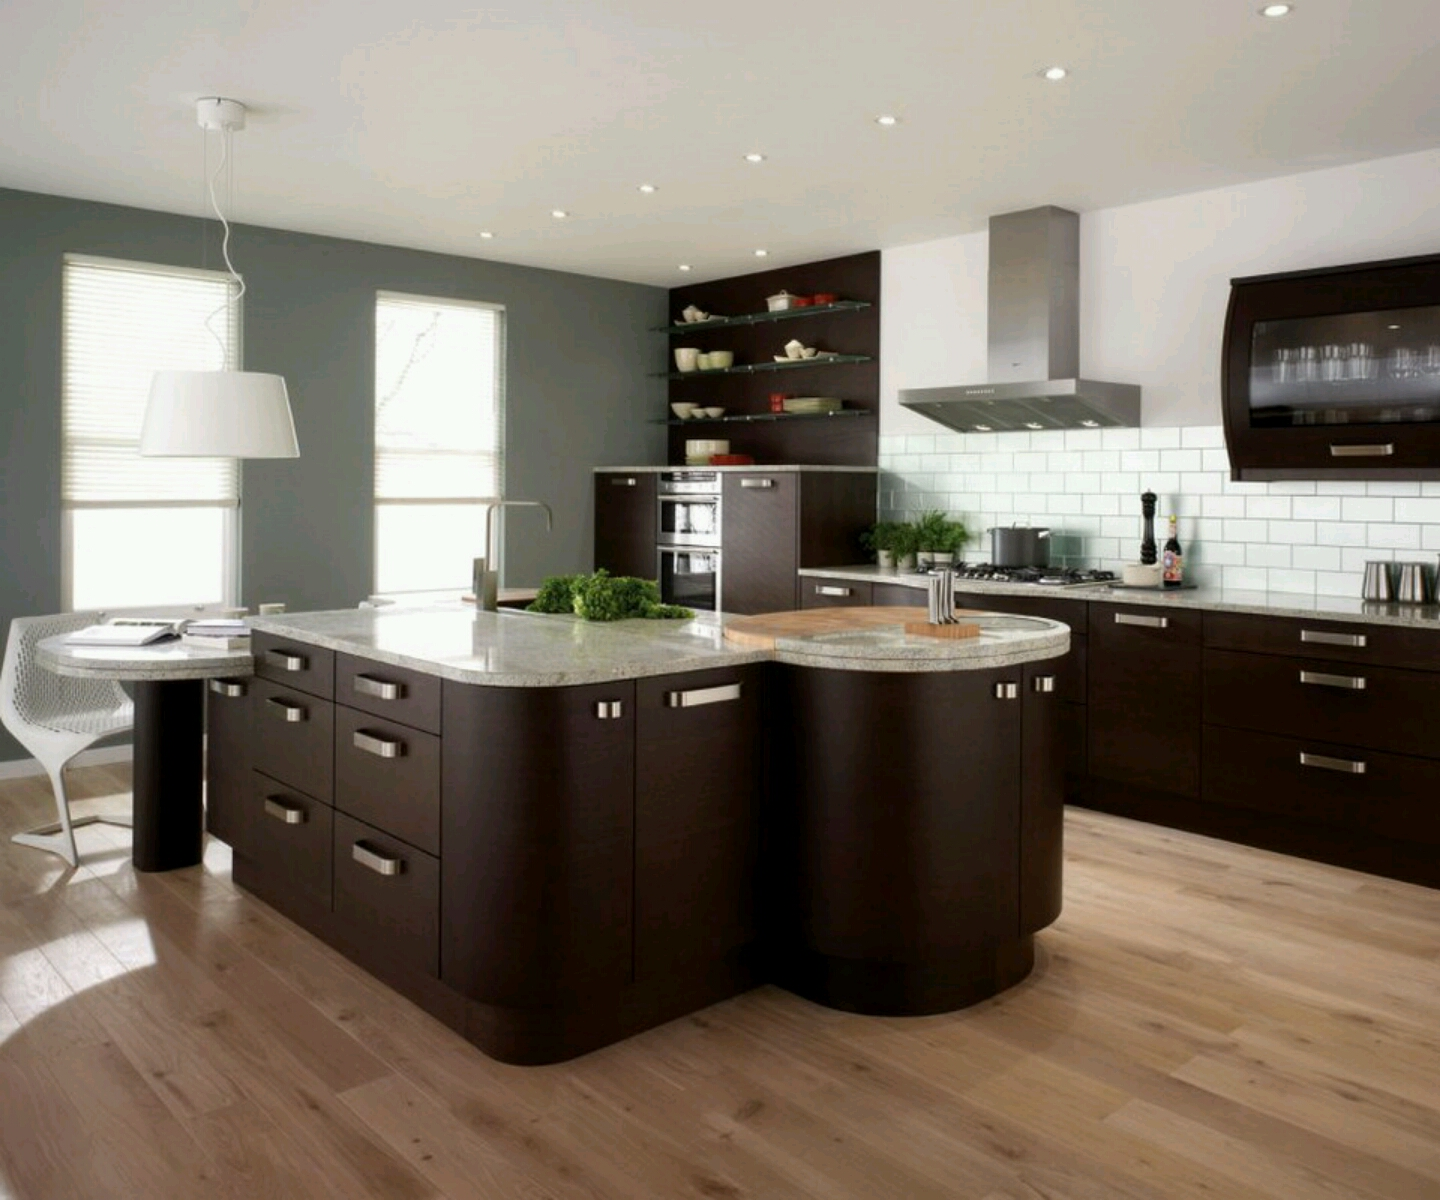 Pictures Of Modern Kitchen: External Home Design, Interior Home Design, Home Gardens Design, Home